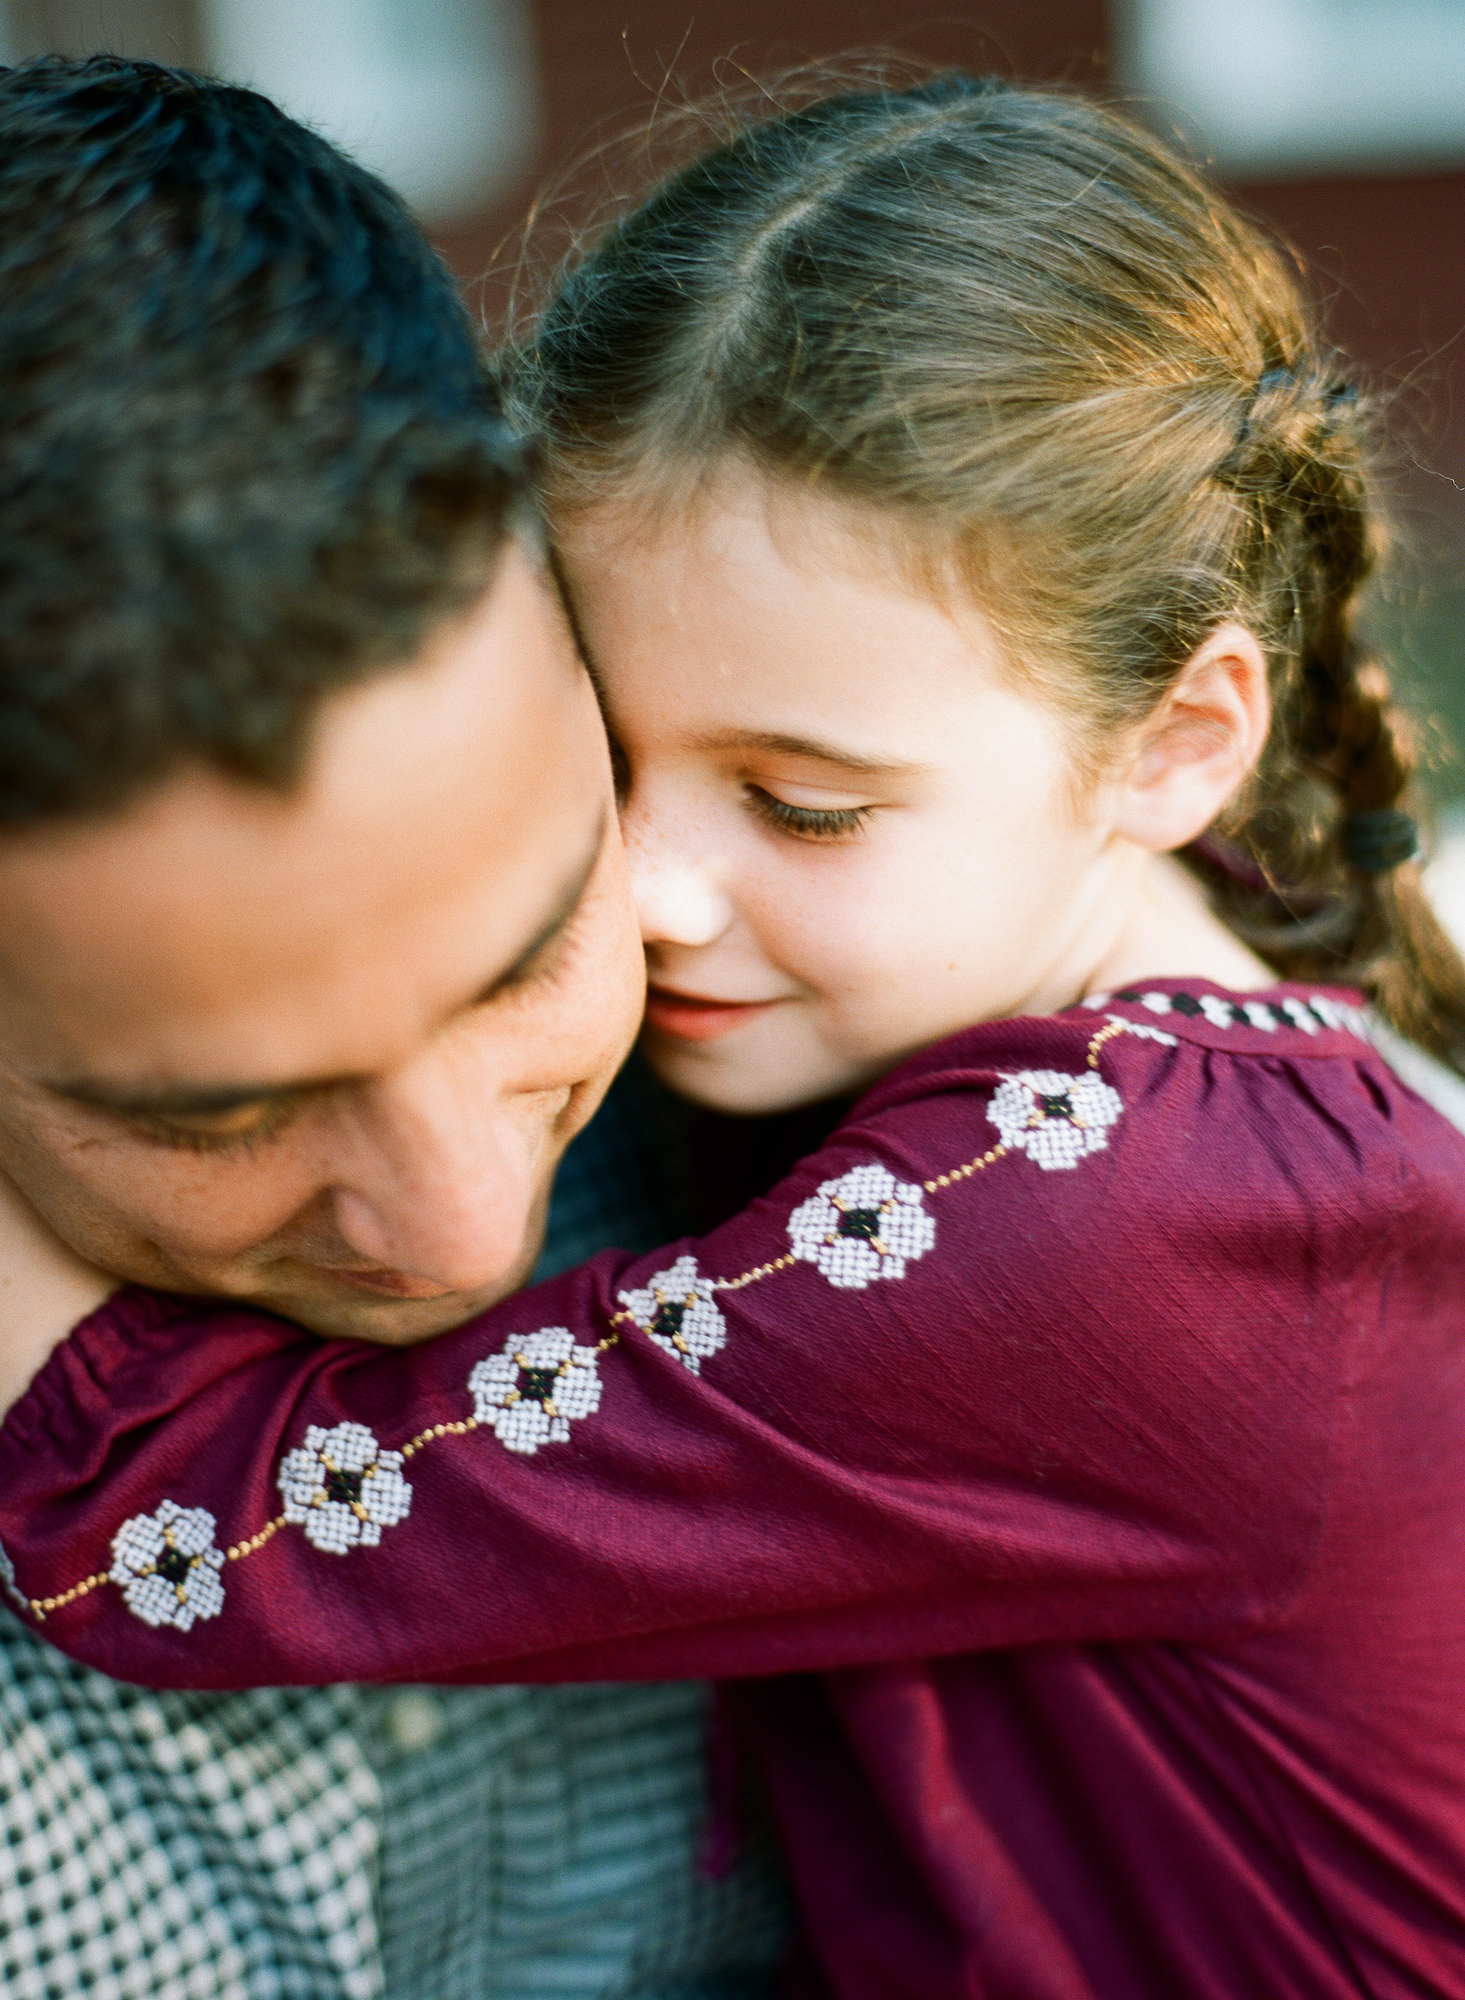 raleigh-lifestyle-family-photographer-lifestyle-photography-021